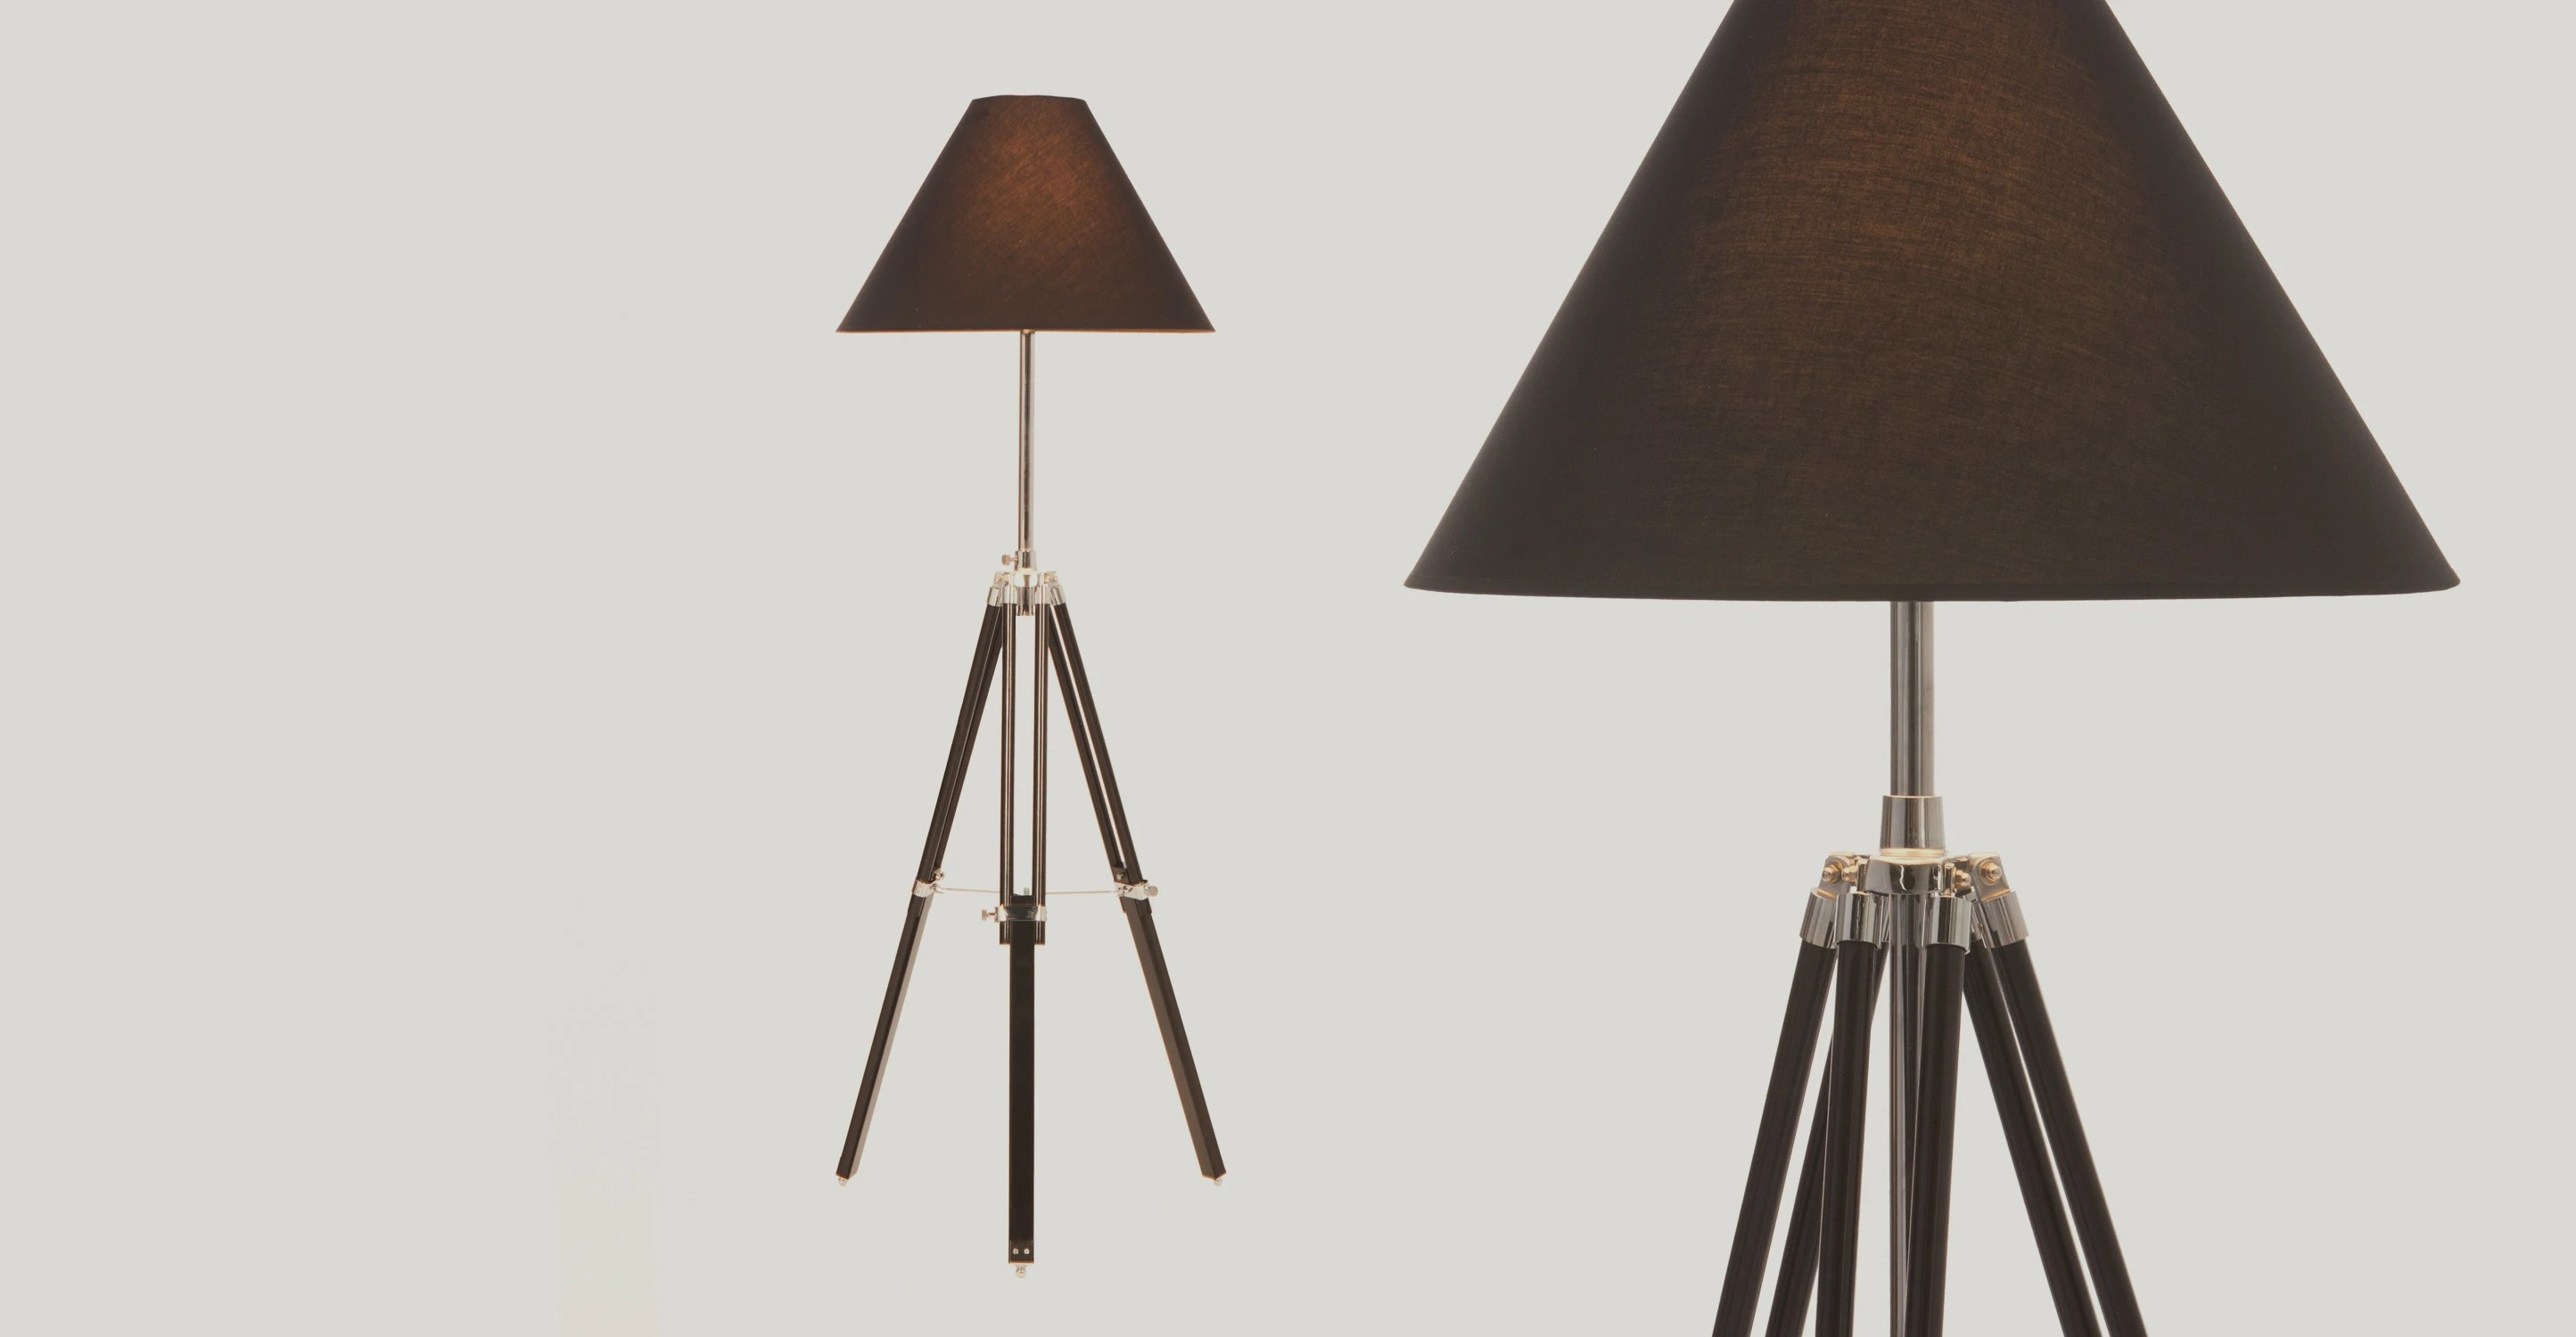 Floor Standing Tripod Lamp Tripod Floor Lamp The Navy Available In Black Made